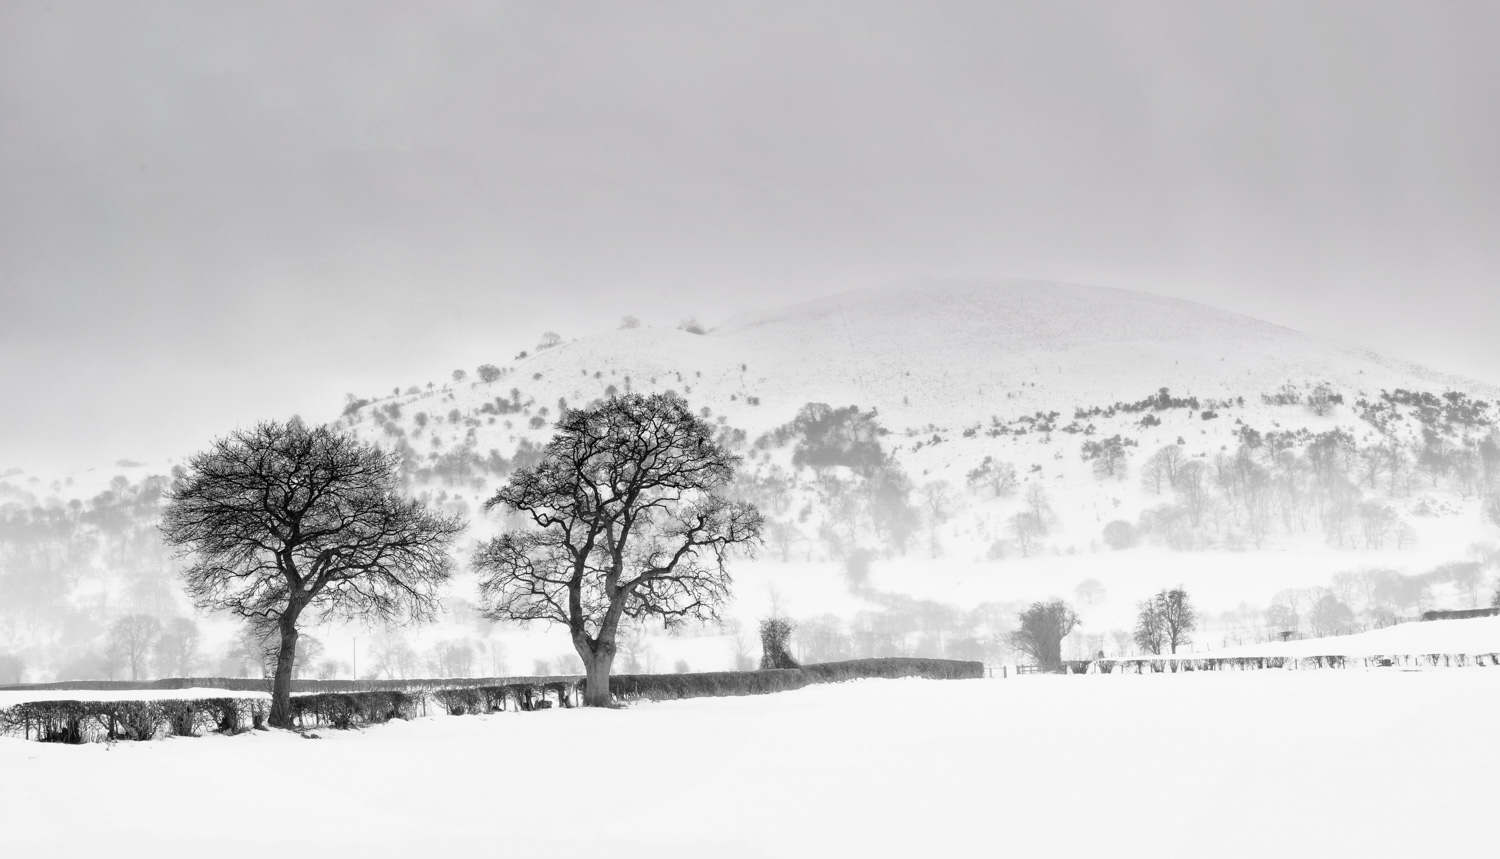 Wales Landscape in the snow.